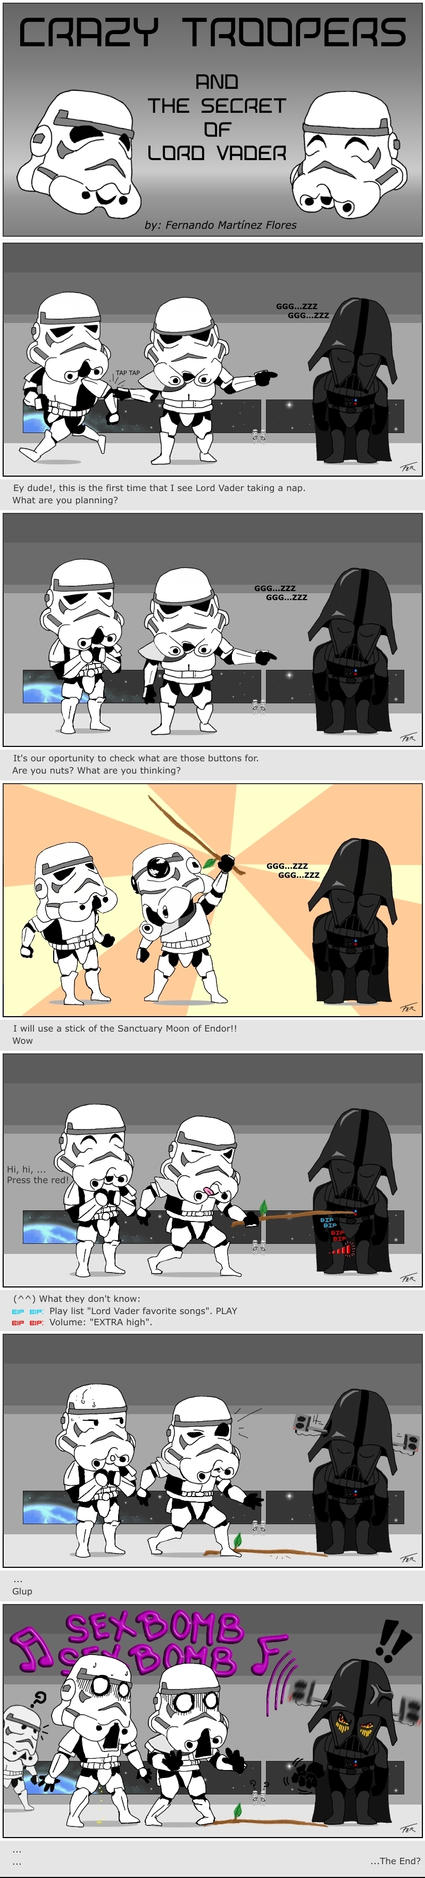 C.T. - Darth Vader's Secret by Mesterfer